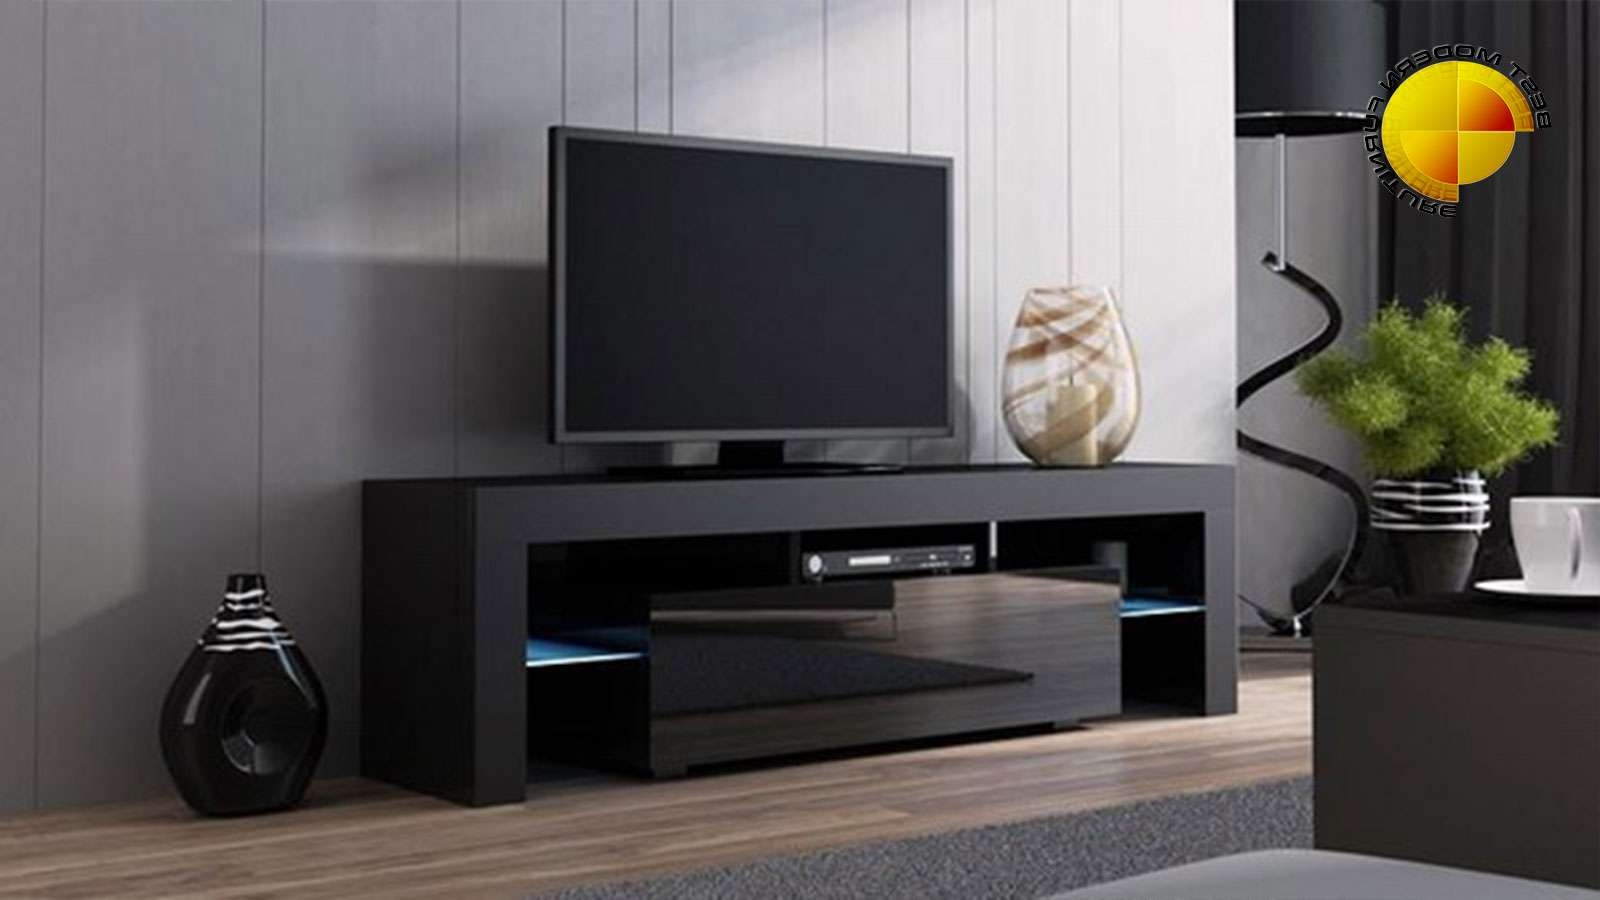 Modern Tv Stand 160Cm High Gloss Cabinet Rgb Led Lights Black Unit Intended For Tv Cabinets Black High Gloss (View 16 of 20)